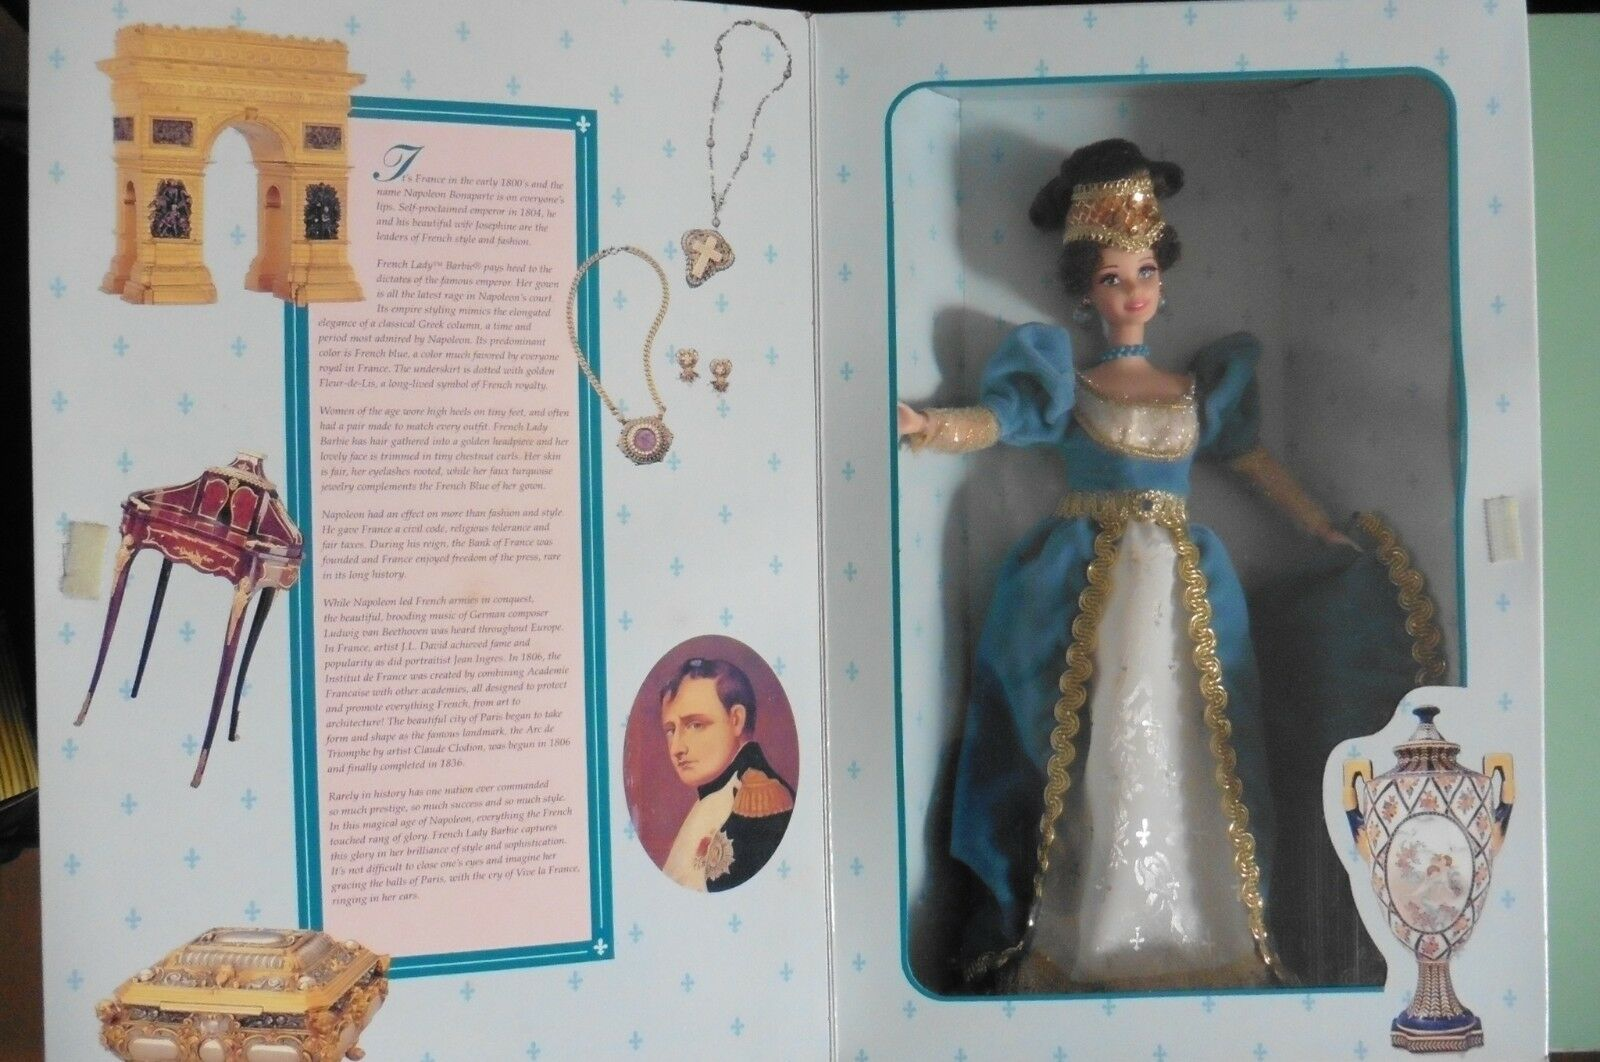 NEUF - Barbie French Lady 1996 The Great Eras Collection - Poupee style Empire